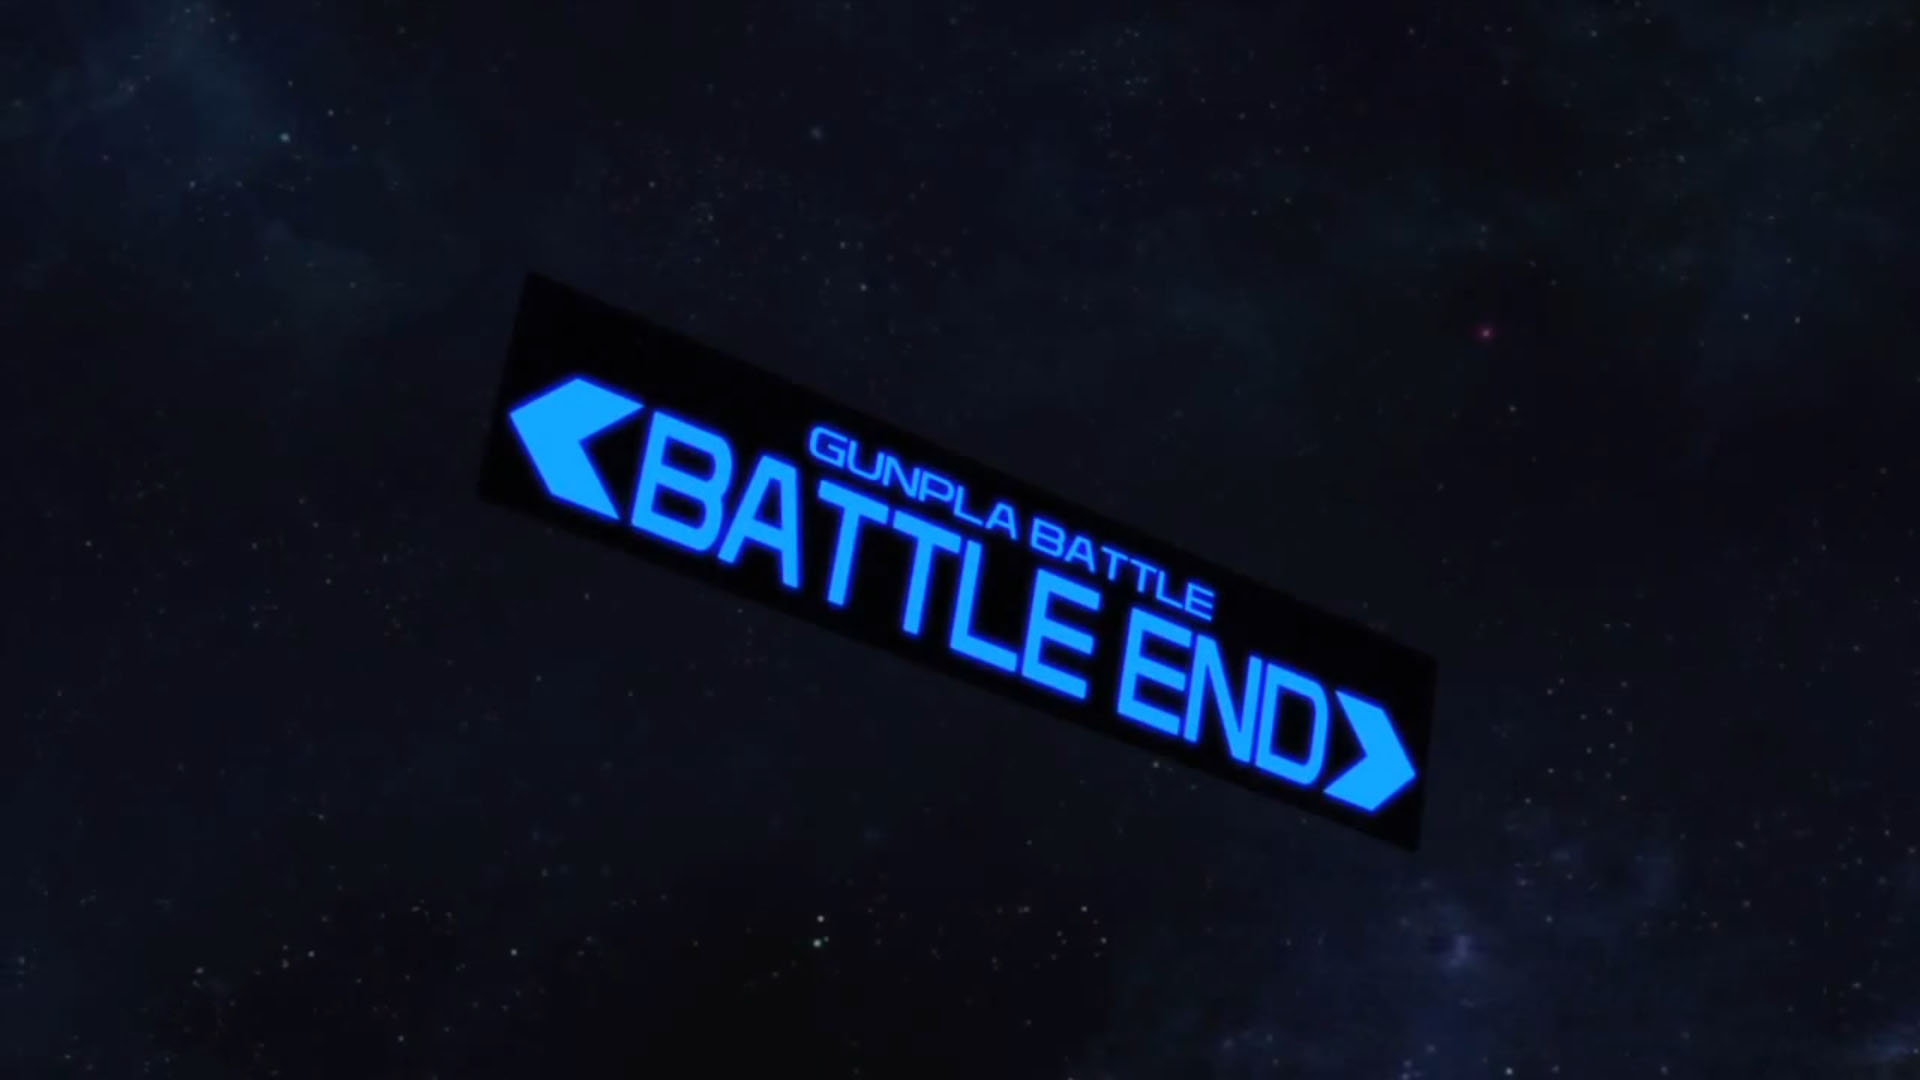 Gundam Build Fighters: Battle End